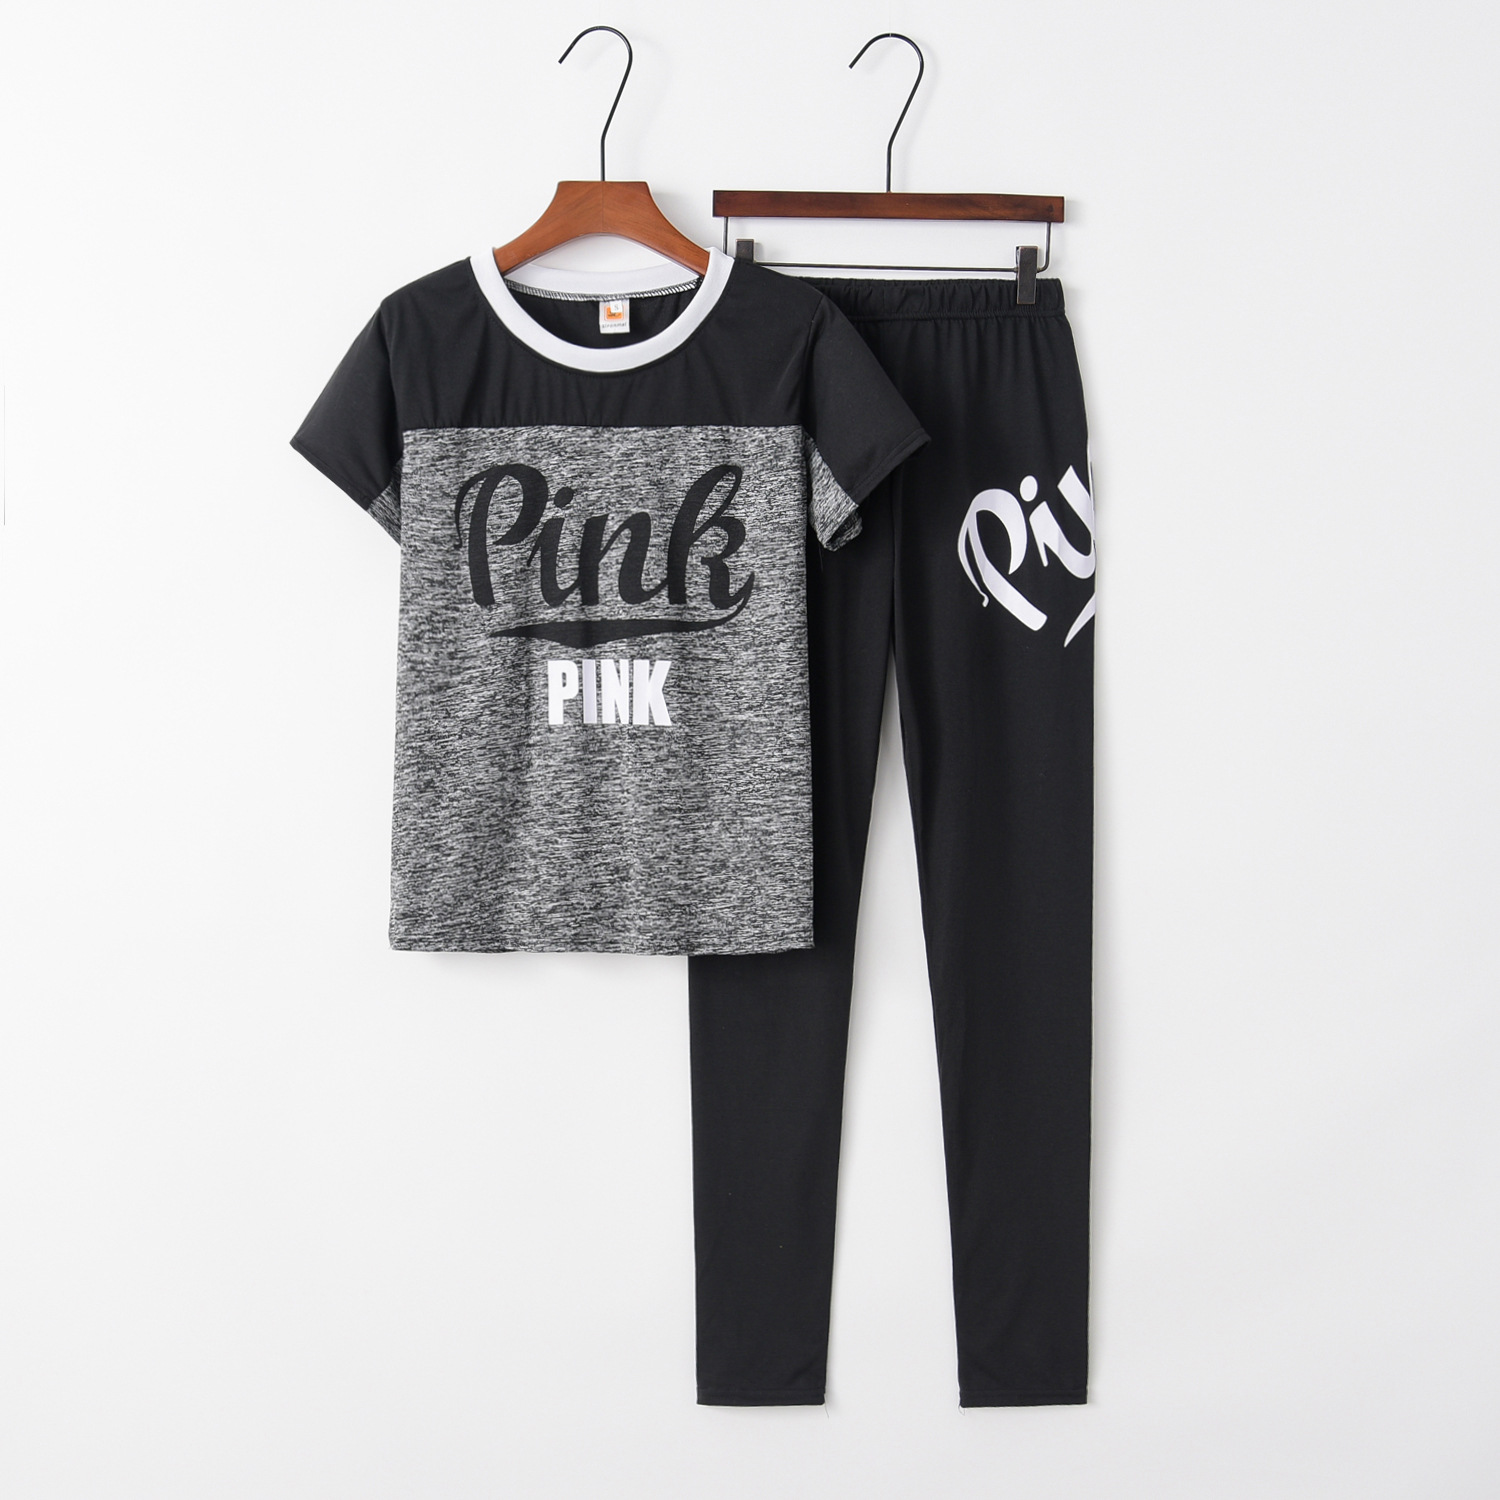 Printed Pink 2020 New Design Fashion Hot Sale Suit Set Women Tracksuit Two-piece Style Outfit Sweatshirt Sport Wear